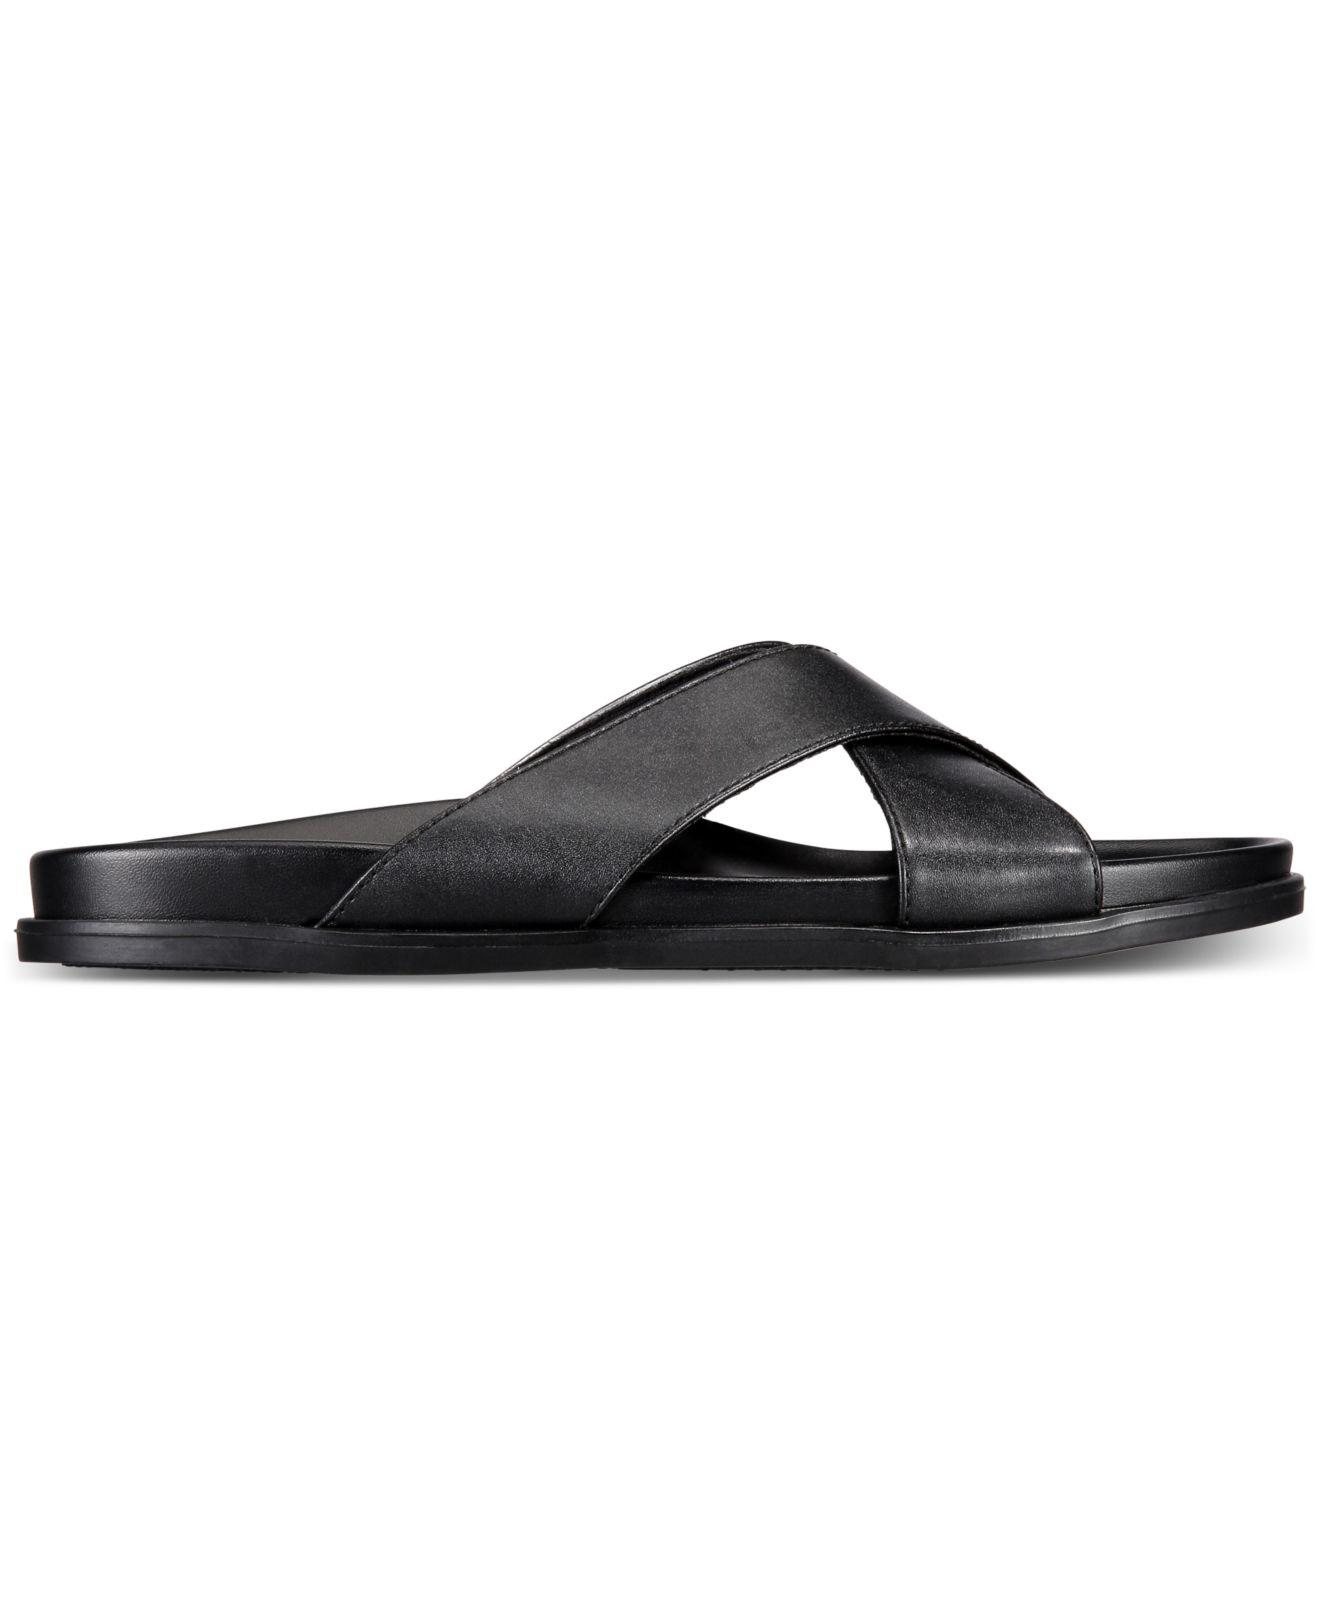 434c28e9ac3b Lyst - Alfani Codi Cross Sandals